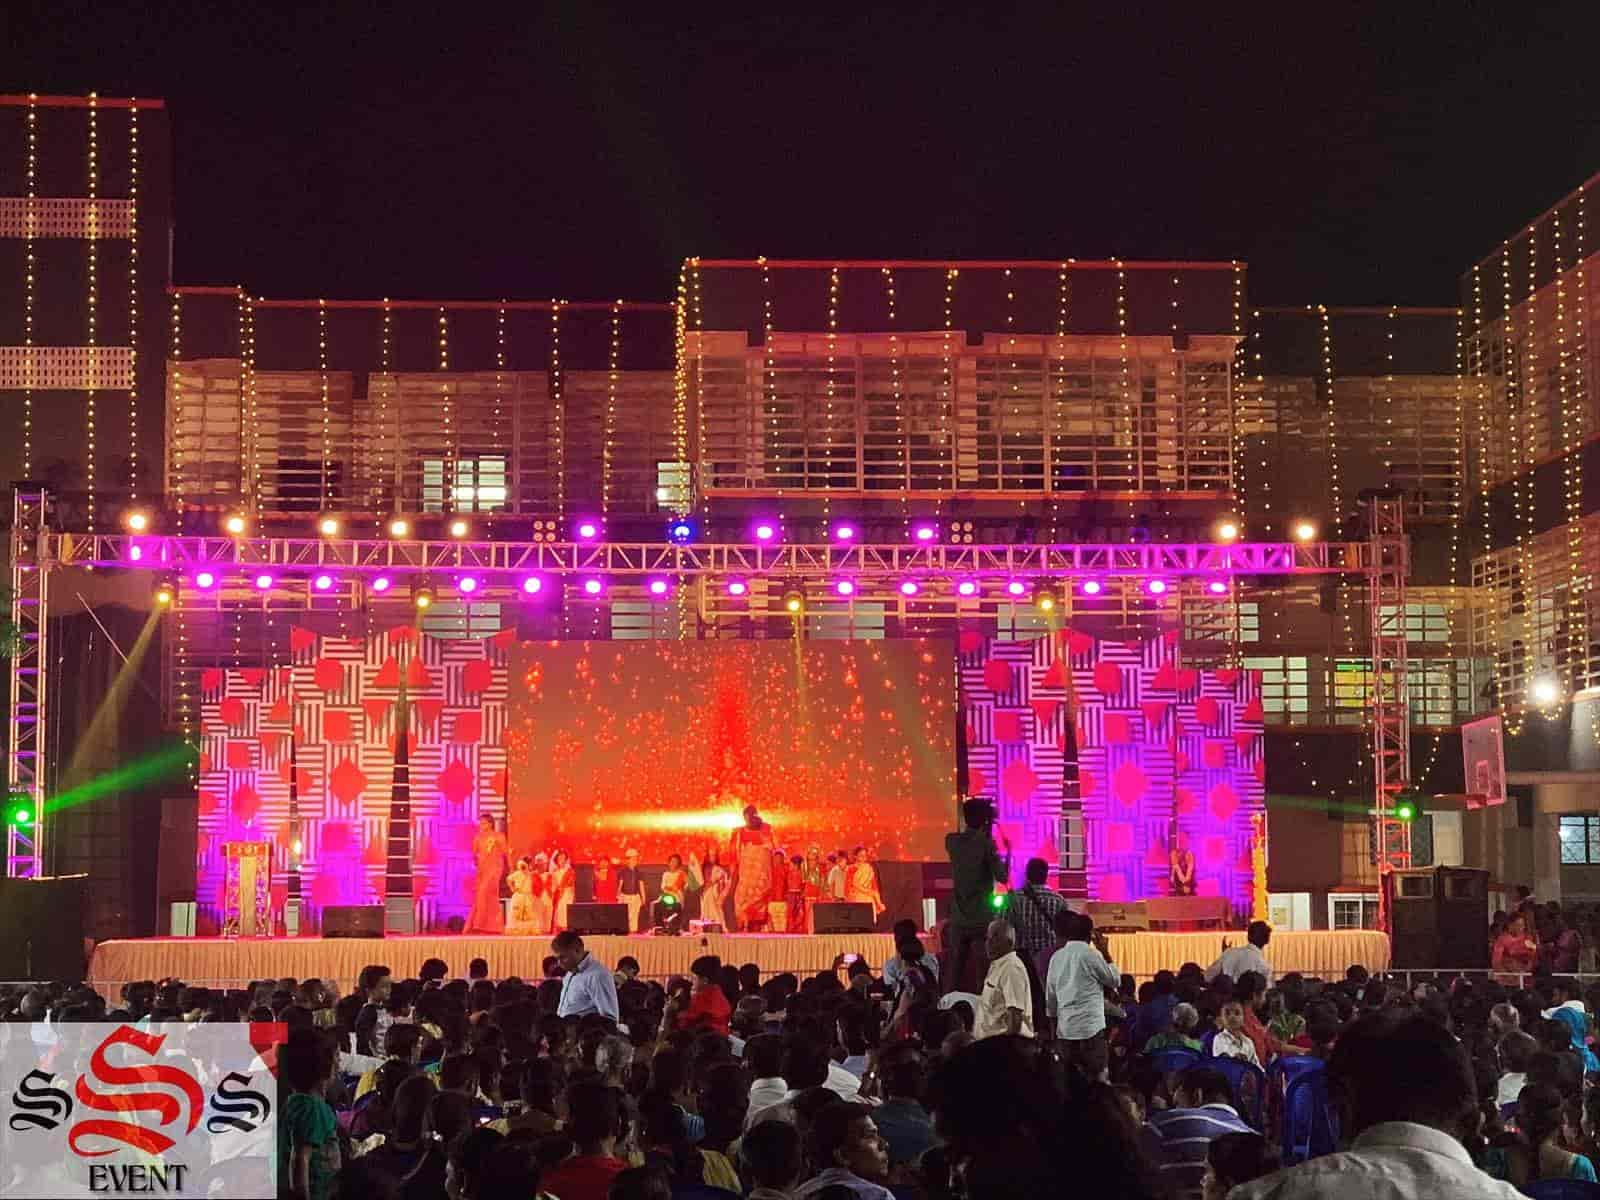 Sss Event Photos, Poonamallee, Chennai- Pictures & Images